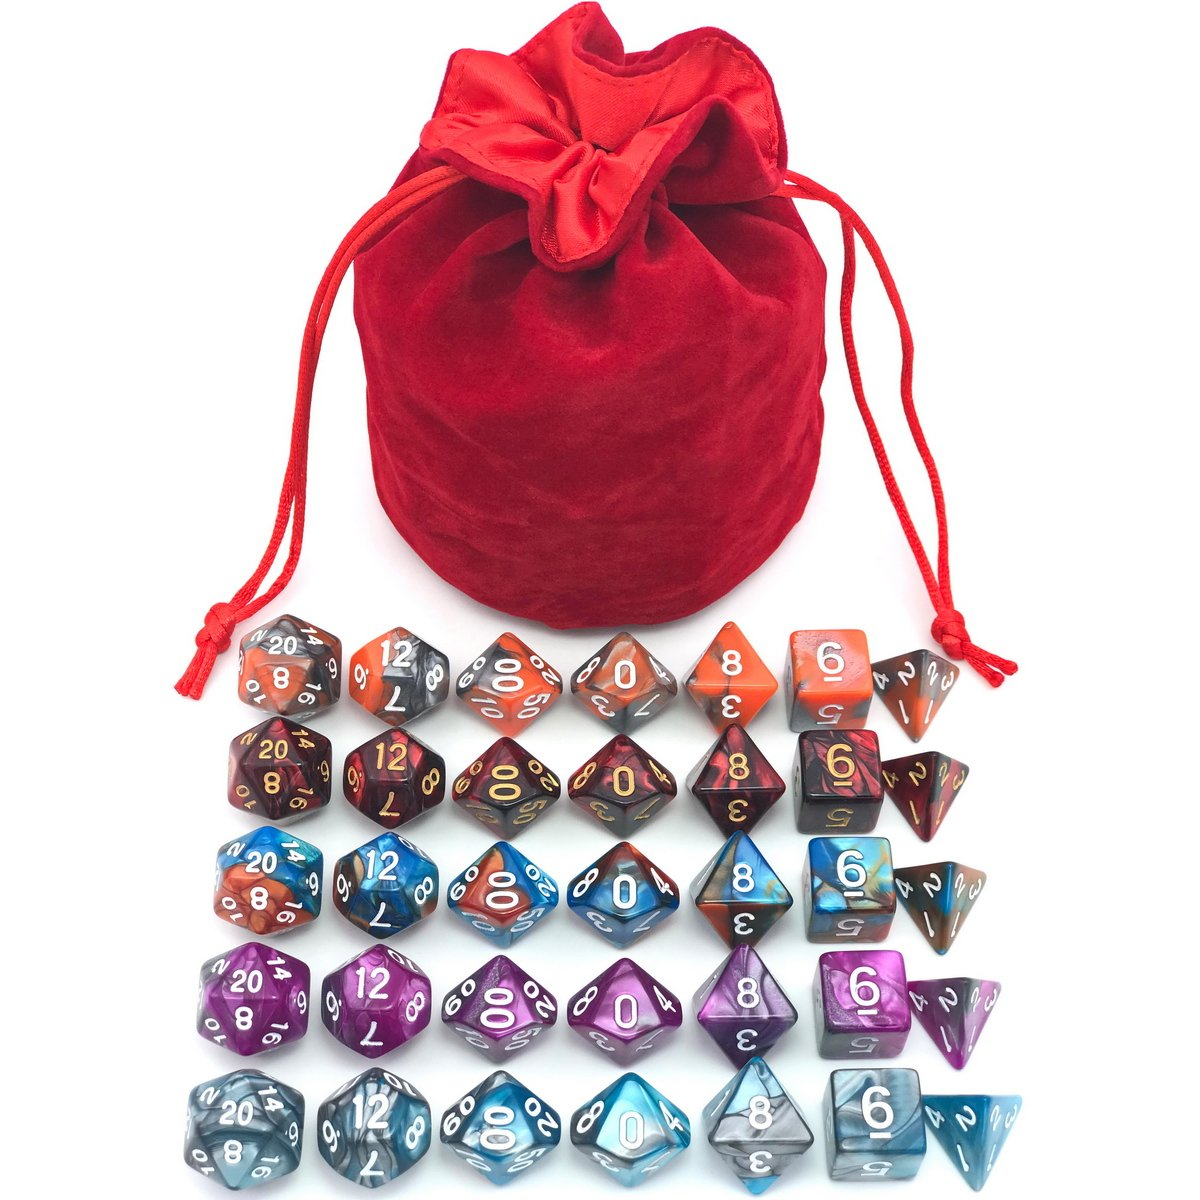 5 Assorted Colors Polyhedral Dice Set for Dungeons and Dragons DND Pathfinder RPG Role Playing Games with Red Drawstring Dice Bag (Total 5 Sets) by IvyFieldDice